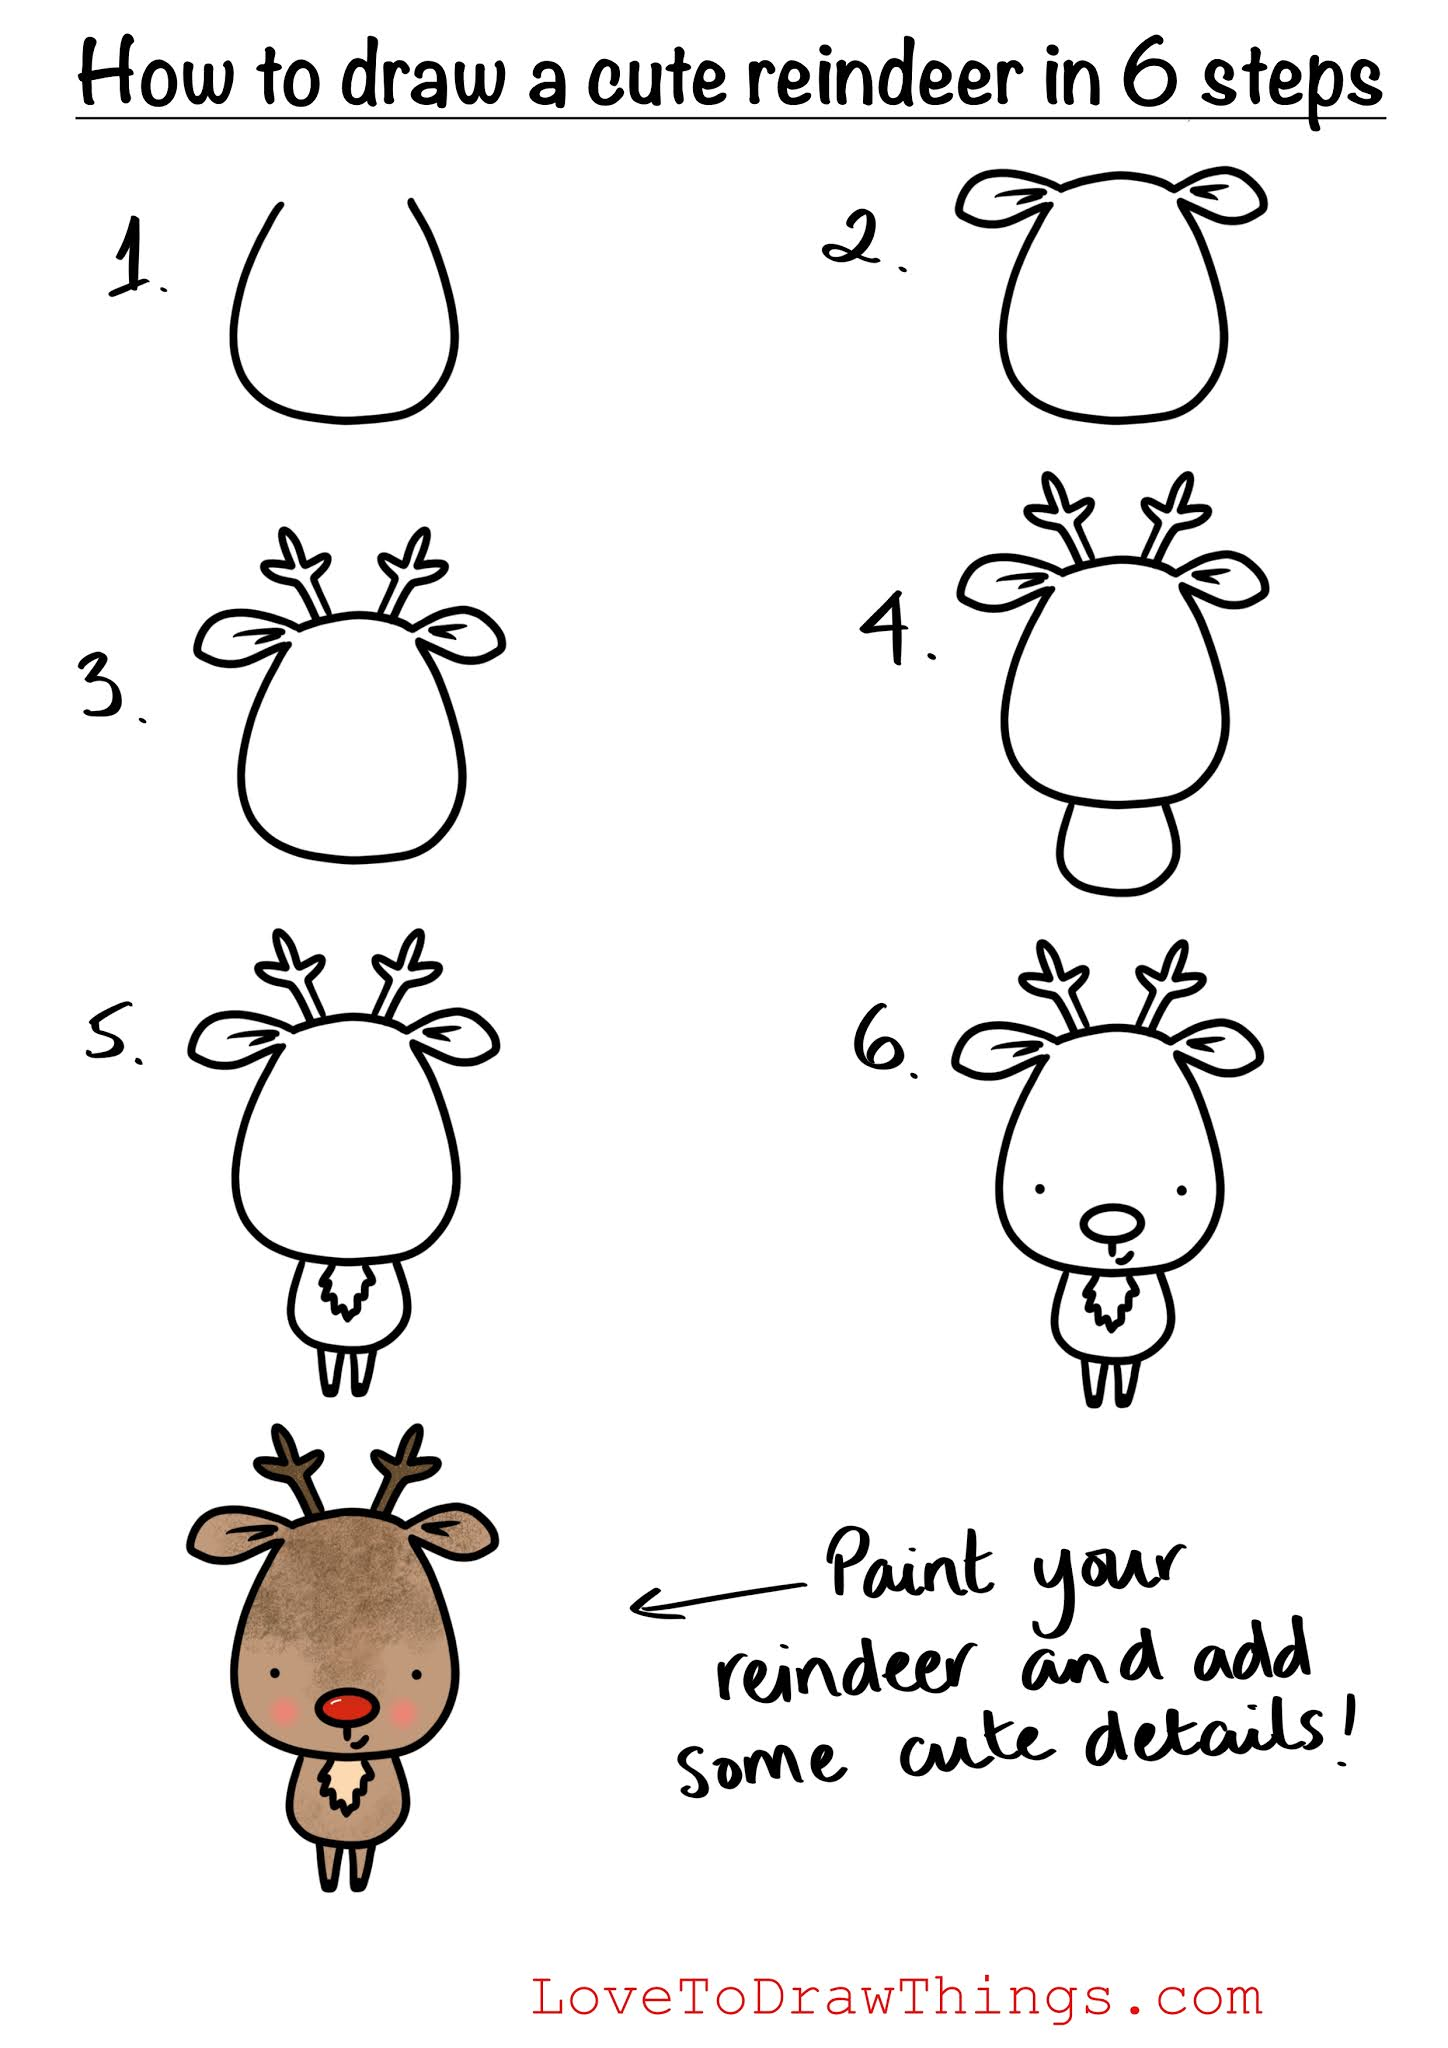 How To Draw A Cute Reindeer In 6 Steps